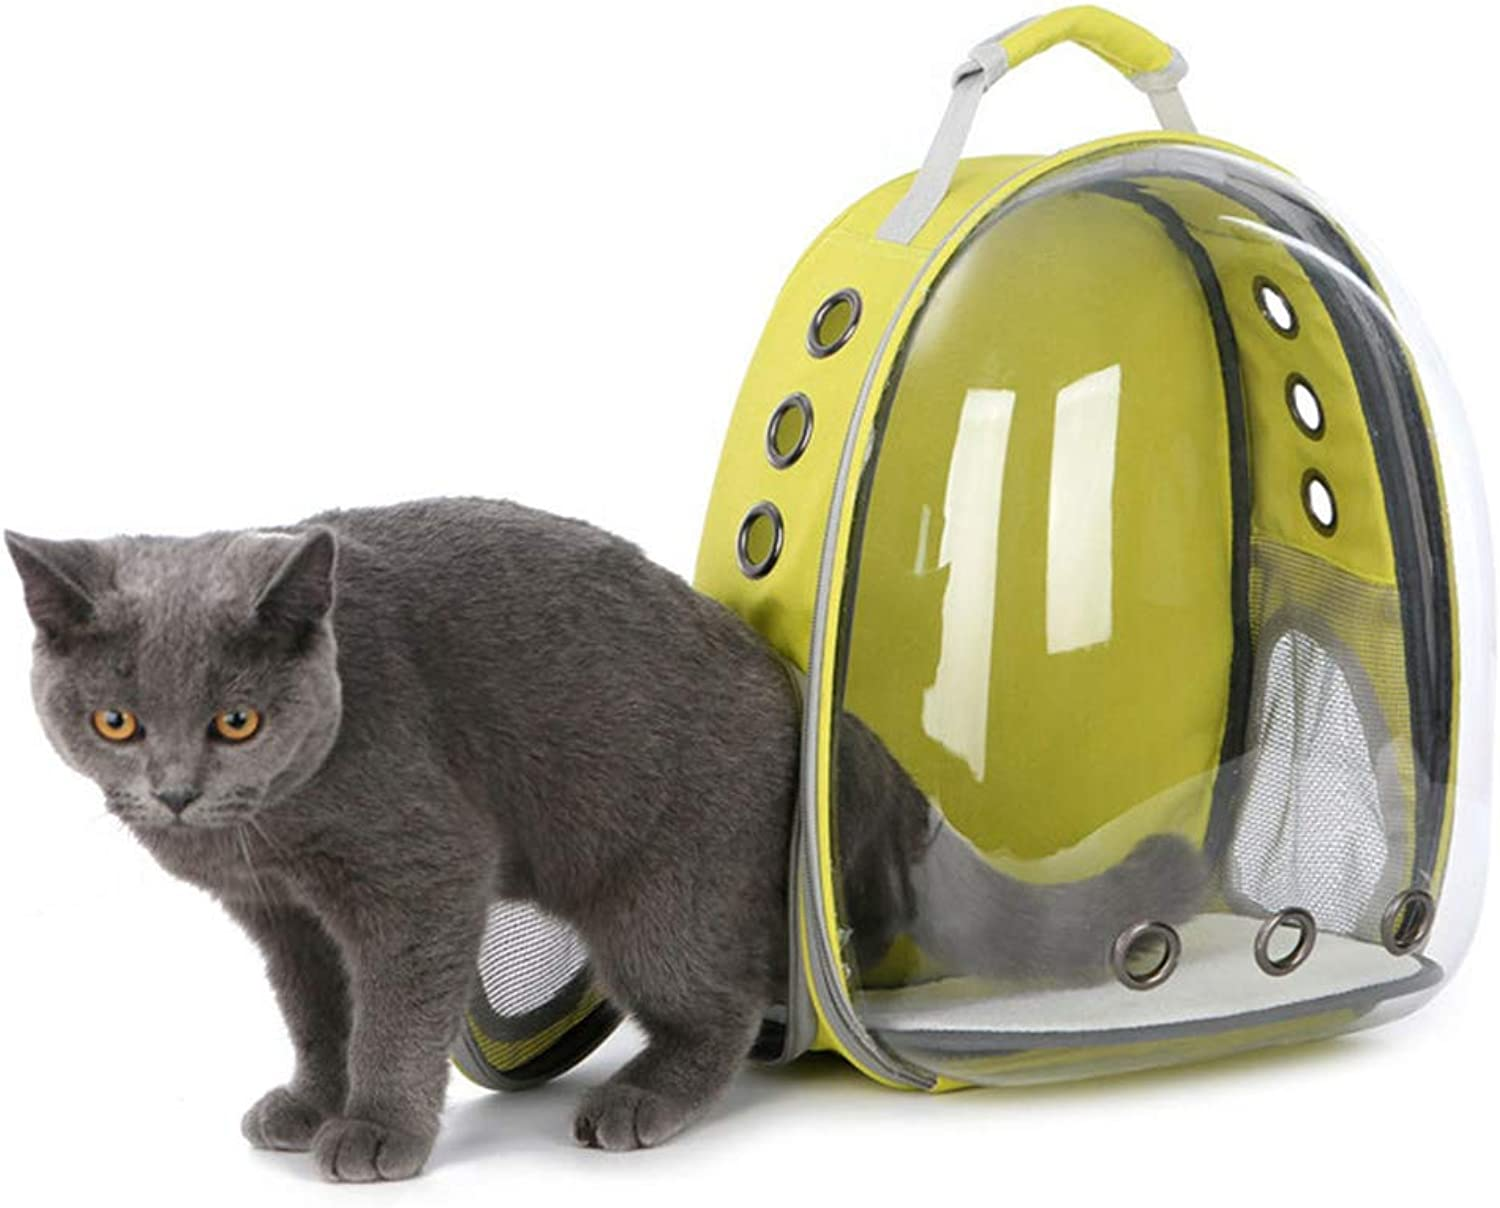 1PC Cat Outdoor Carrying Backpack Travel Pet Space Capsule Transparent Waterproof Cat Holding Backpack (Yellow)